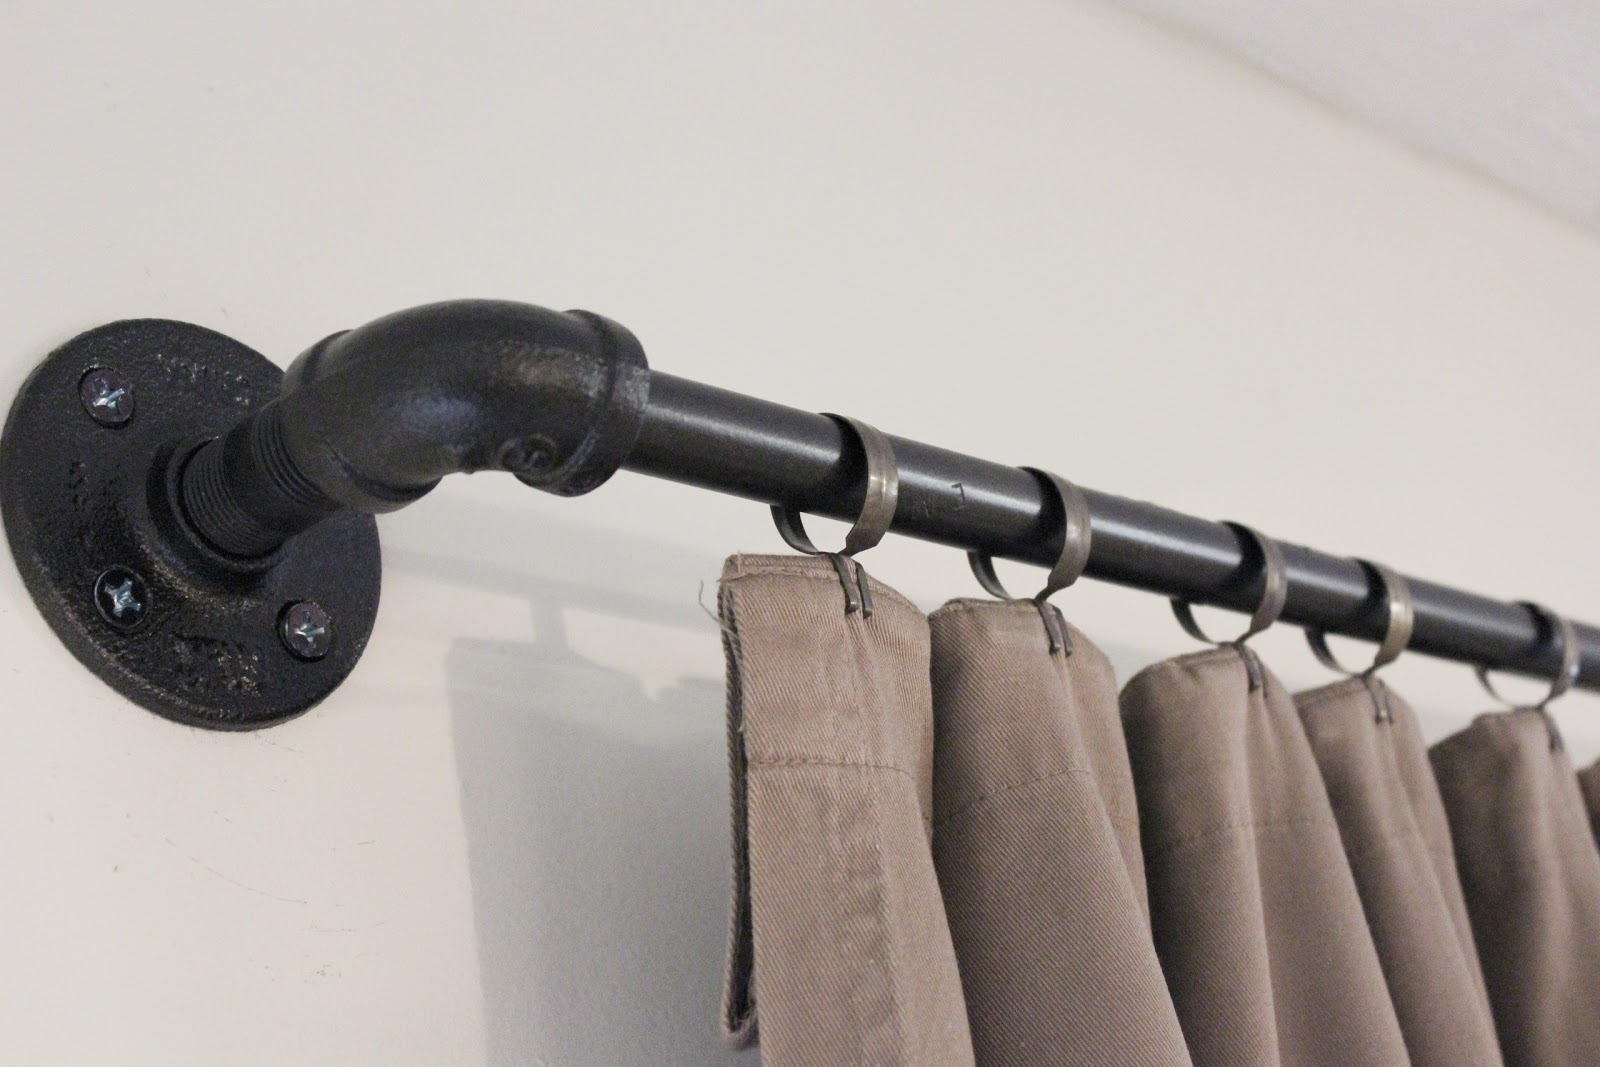 Diy curtain rods conduit - Conduit Pipe Drapery Rod Tutorial Www Adorbymelissa Com